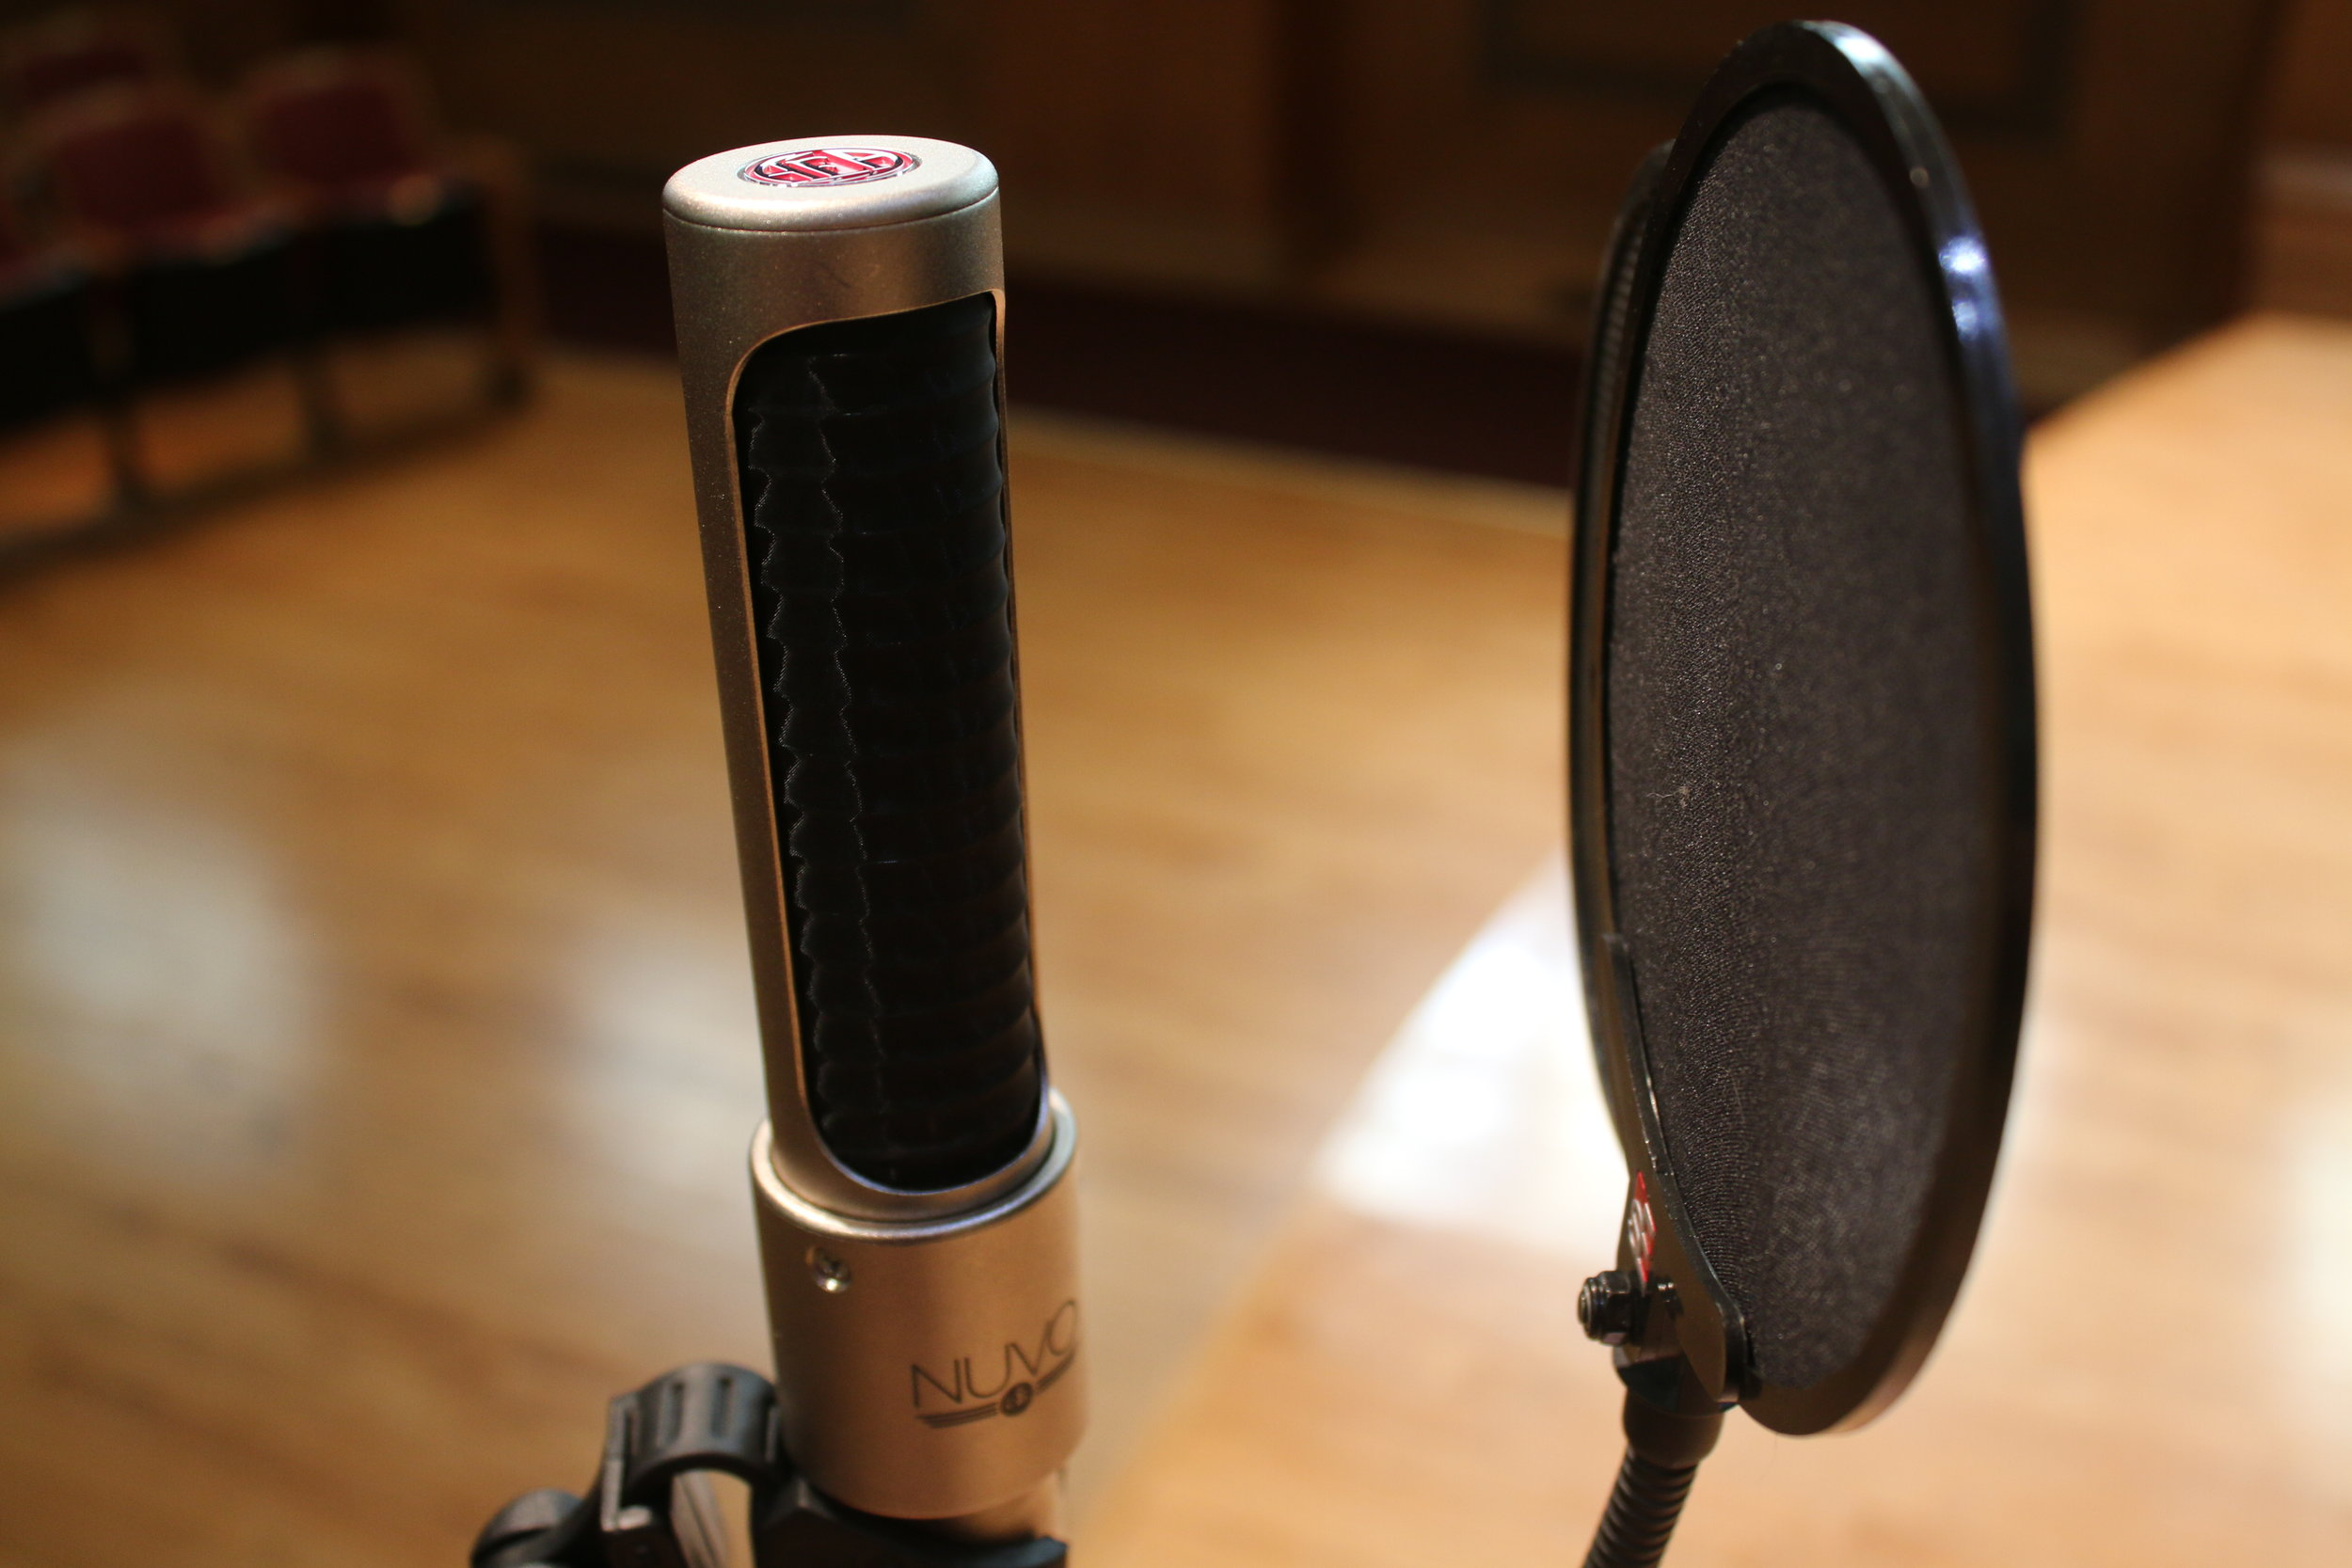 Audio - We pride ourselves on making stellar audio recordings, both at live performances and in the studio. As classically trained musicians, we pay careful attention to balance, color, and the unique timbre of each individual instrument.